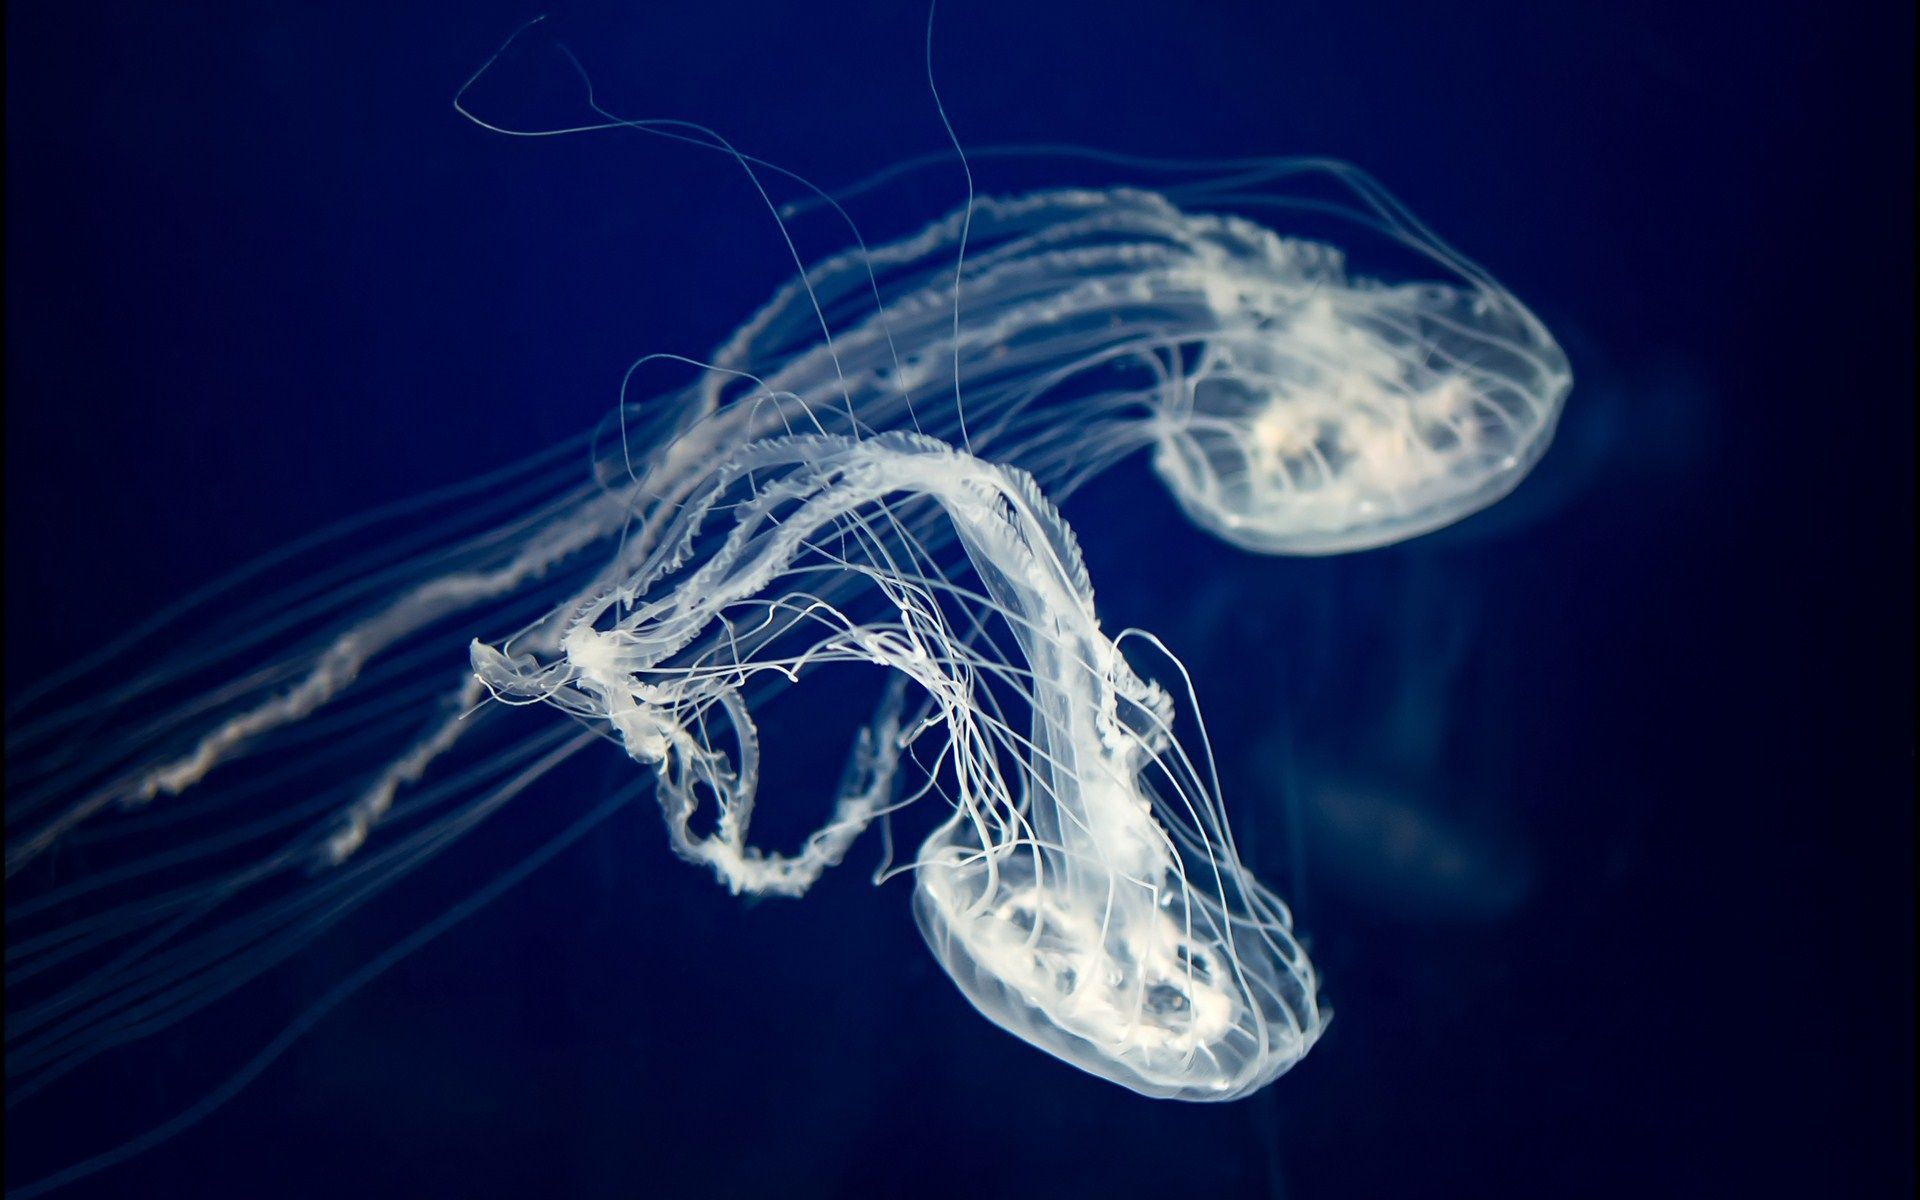 jellyfish wallpapers hd download 1920a—1080 jellyfish wallpapers 51 wallpapers adorable wallpapers